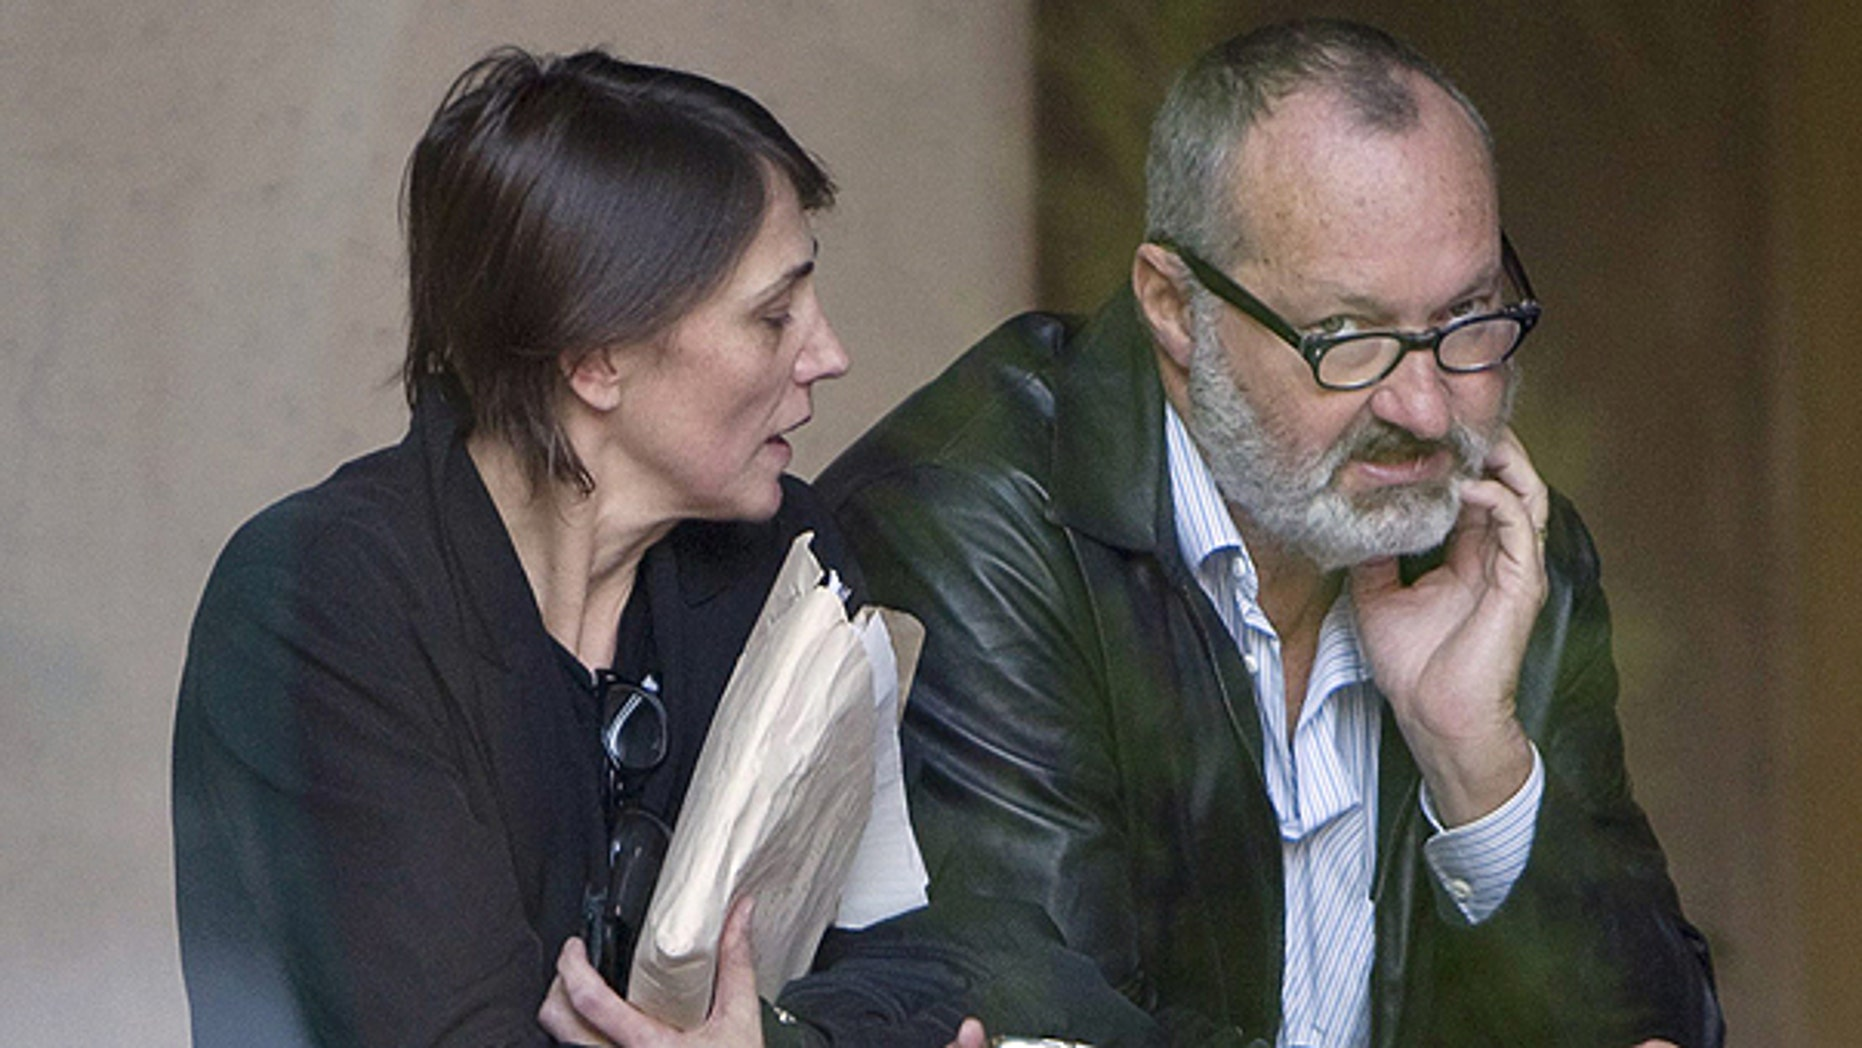 Oct. 27: Actor Randy Quaid, right, and his wife Evi wait are seen inside the building of his lawyers office in Vancouver, British Columbia, Canada.